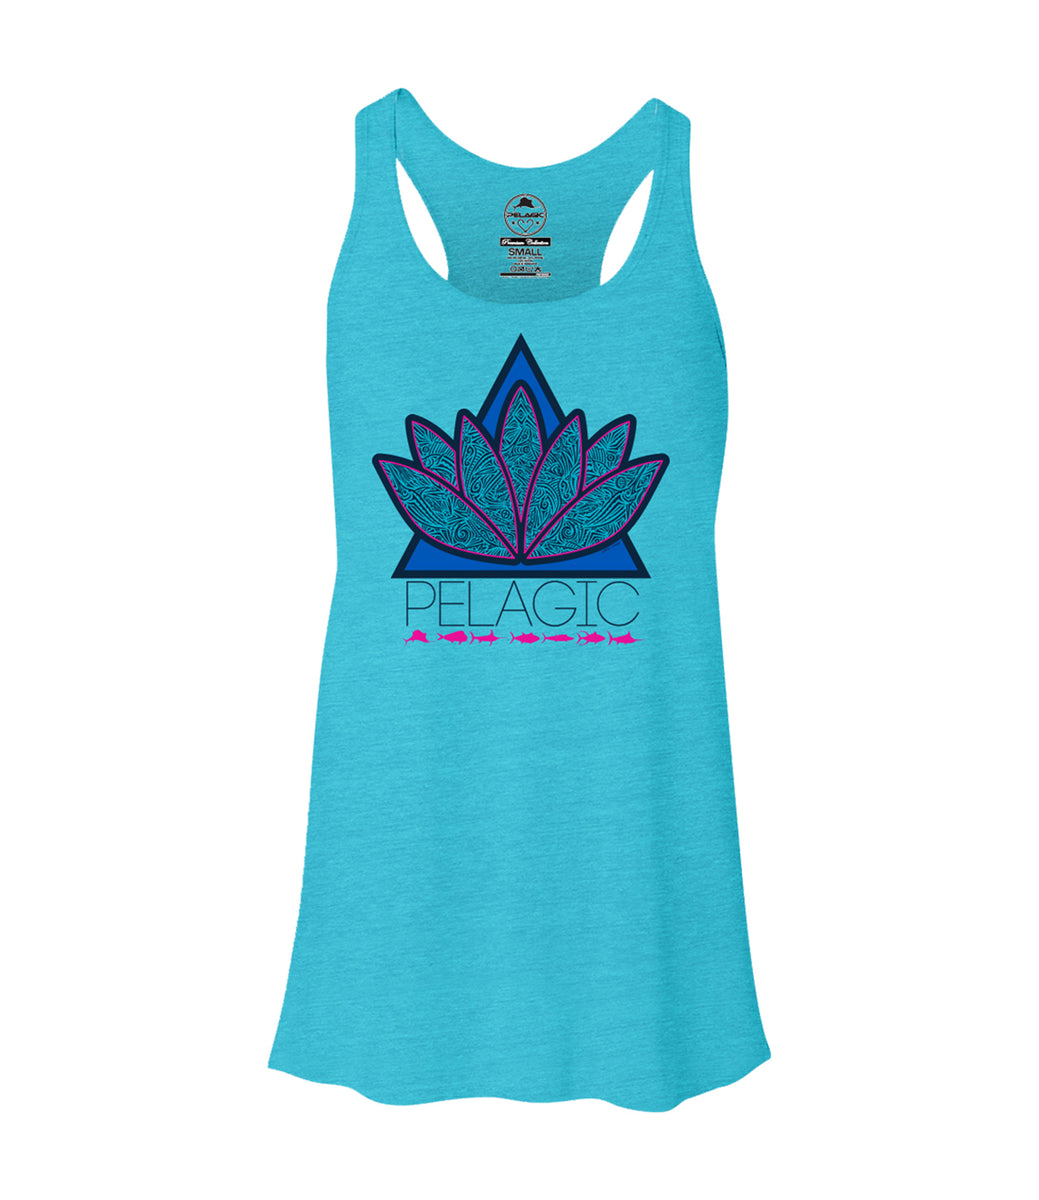 Lotus Love Tank Top Big Image - 1